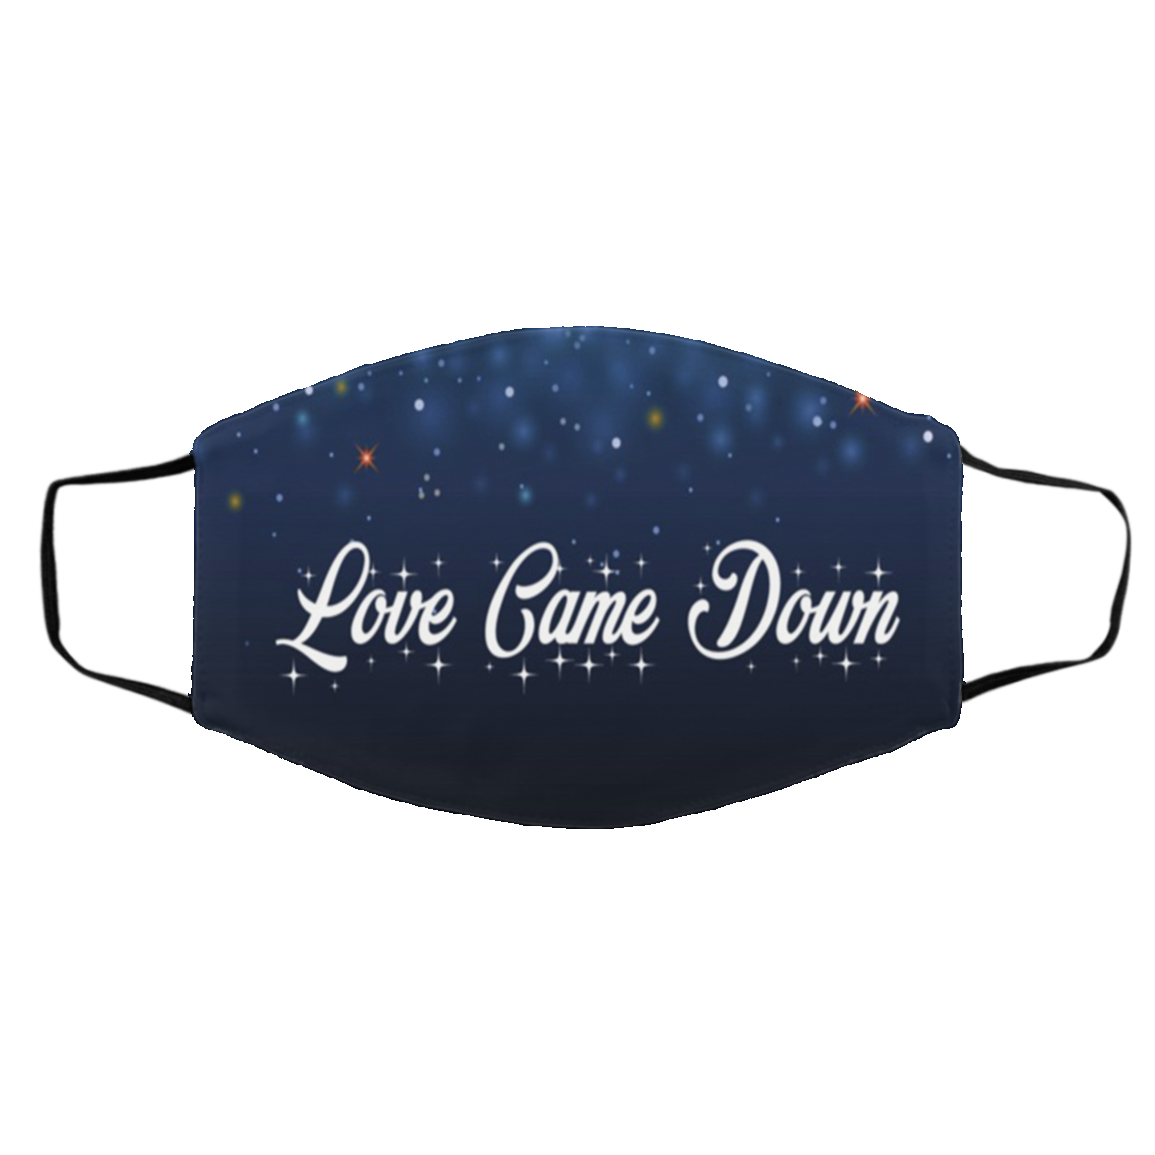 Love Came Down Cloth Face Mask